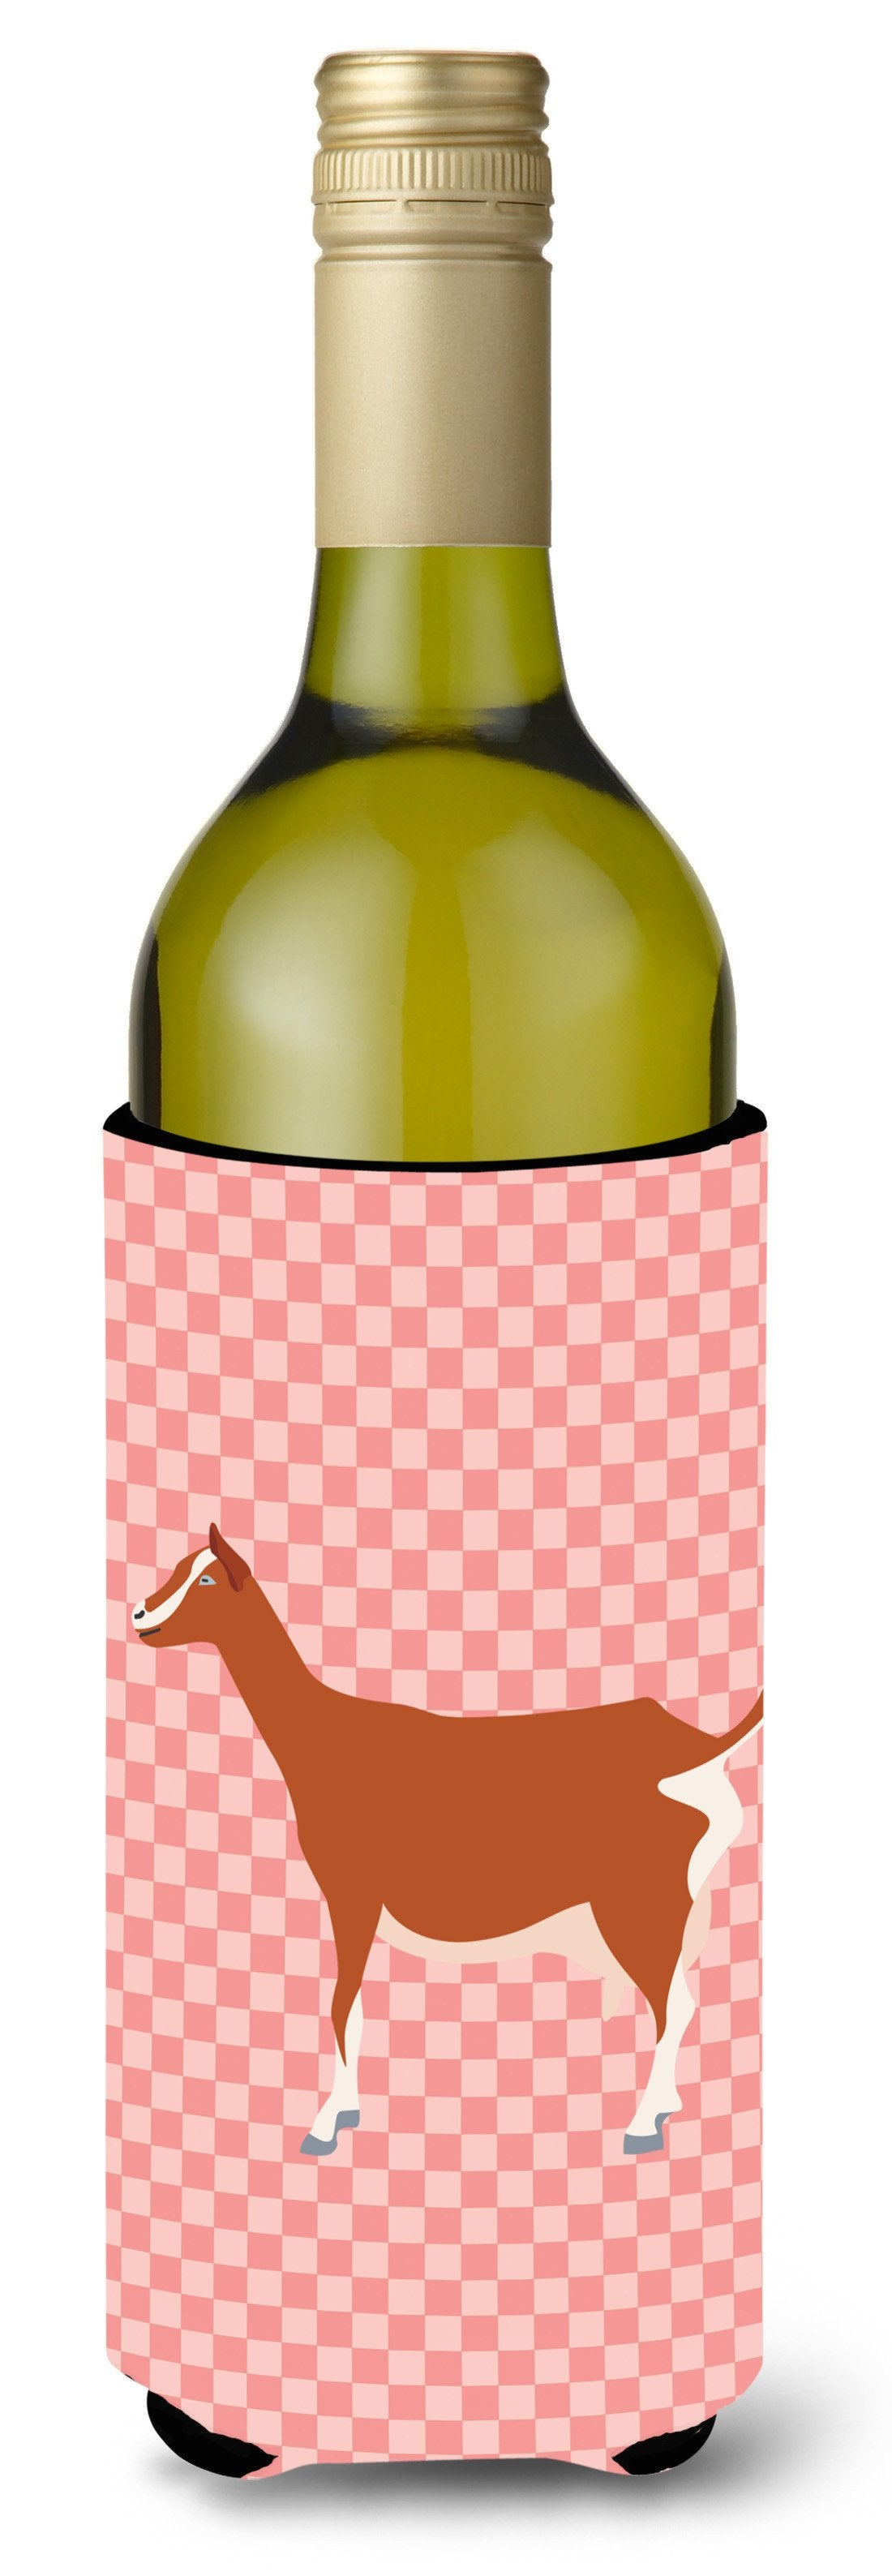 Toggenburger Goat Pink Check Wine Bottle Beverge Insulator Hugger BB7881LITERK by Caroline's Treasures